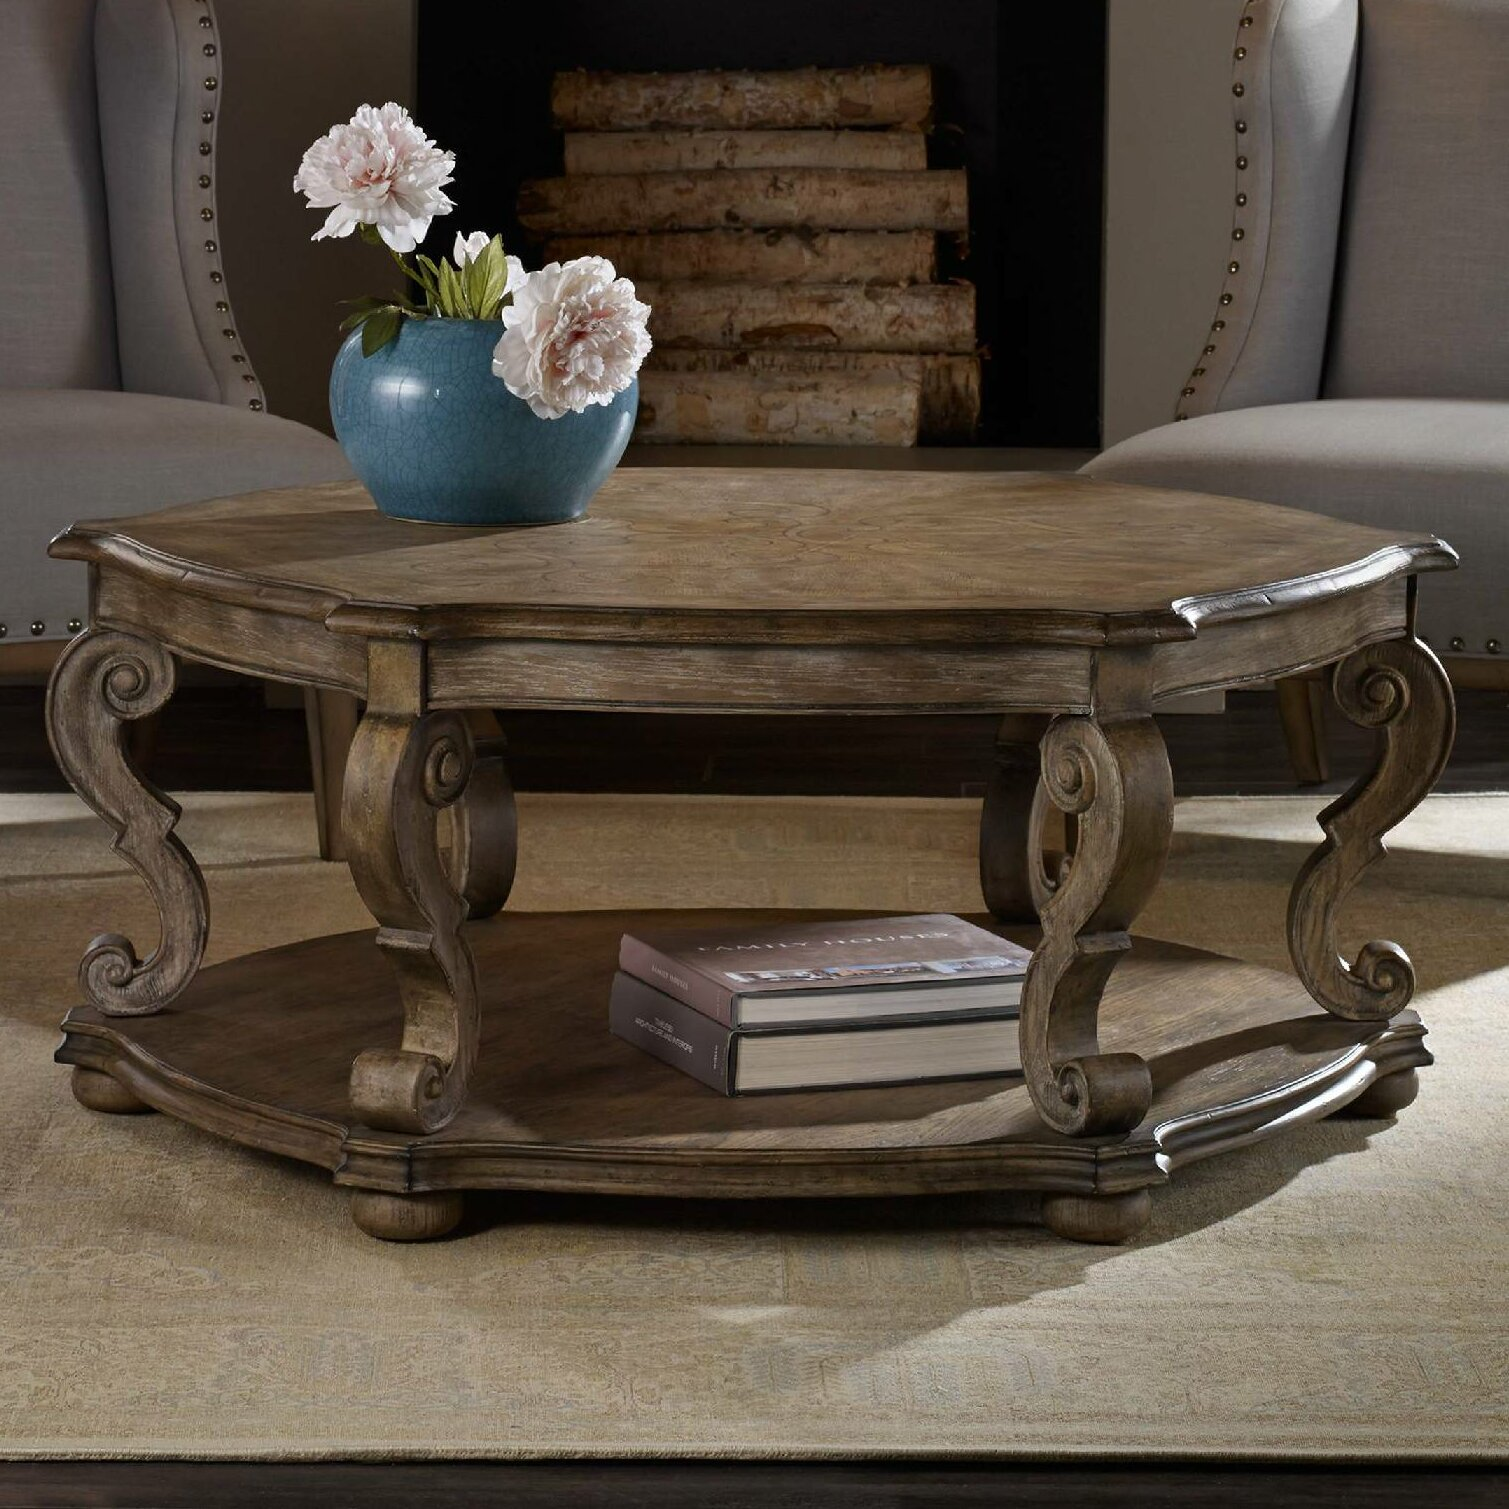 Solana Coffee Table - Hooker Furniture Solana Coffee Table & Reviews Wayfair